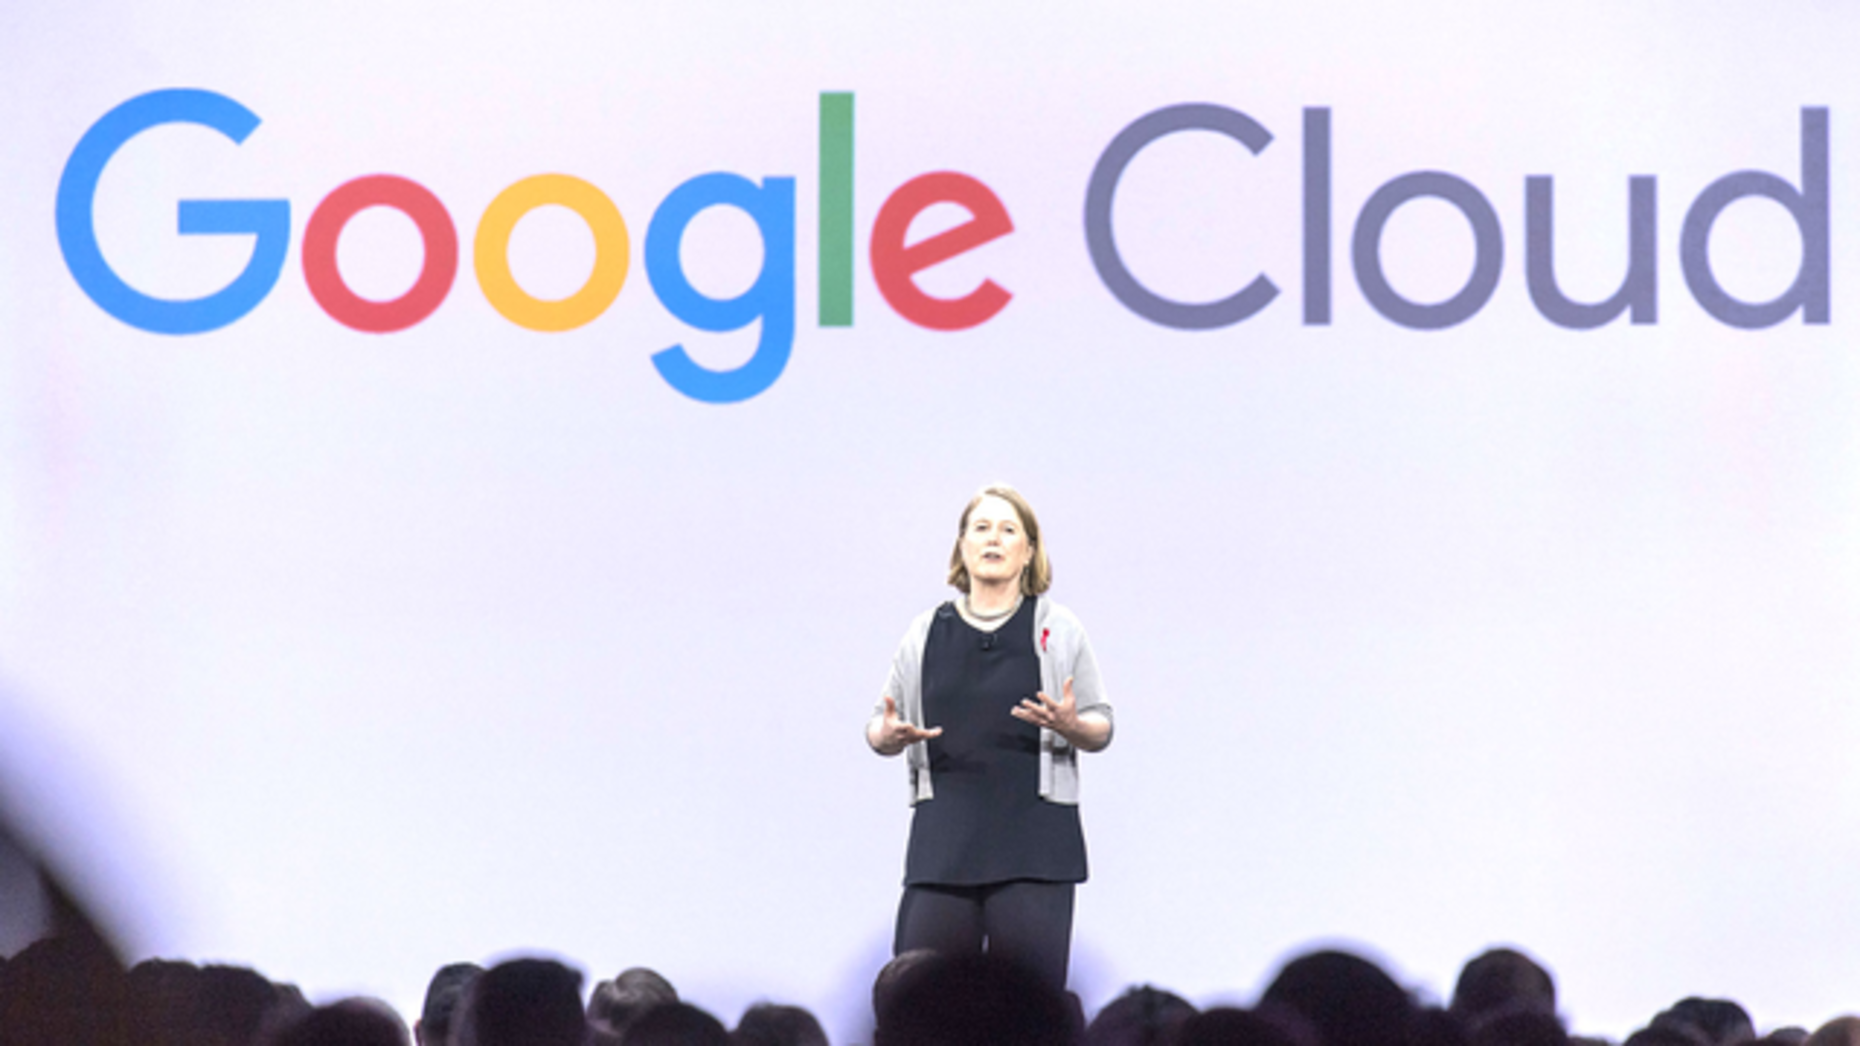 Google's cloud chief Diane Greene. Photo by Bloomberg.